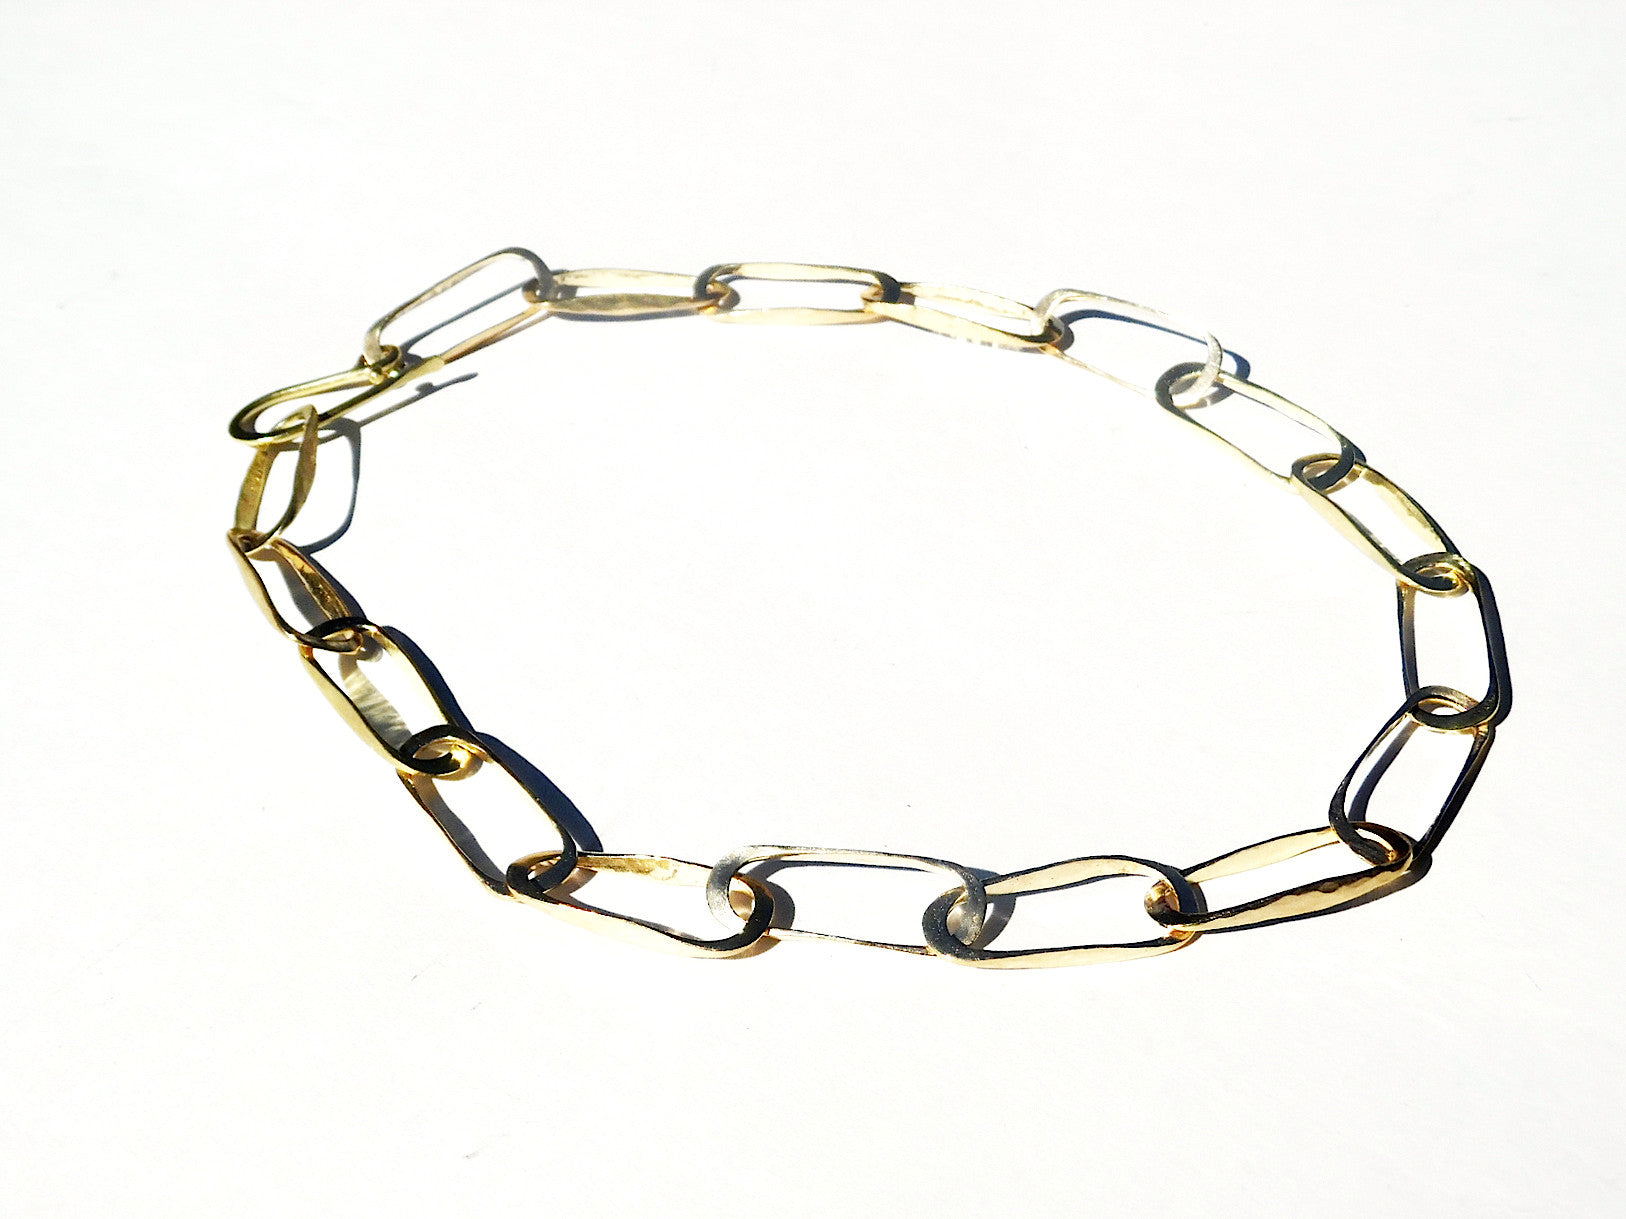 OVAL LINK NECKLACE IN GOLD ON BRASS